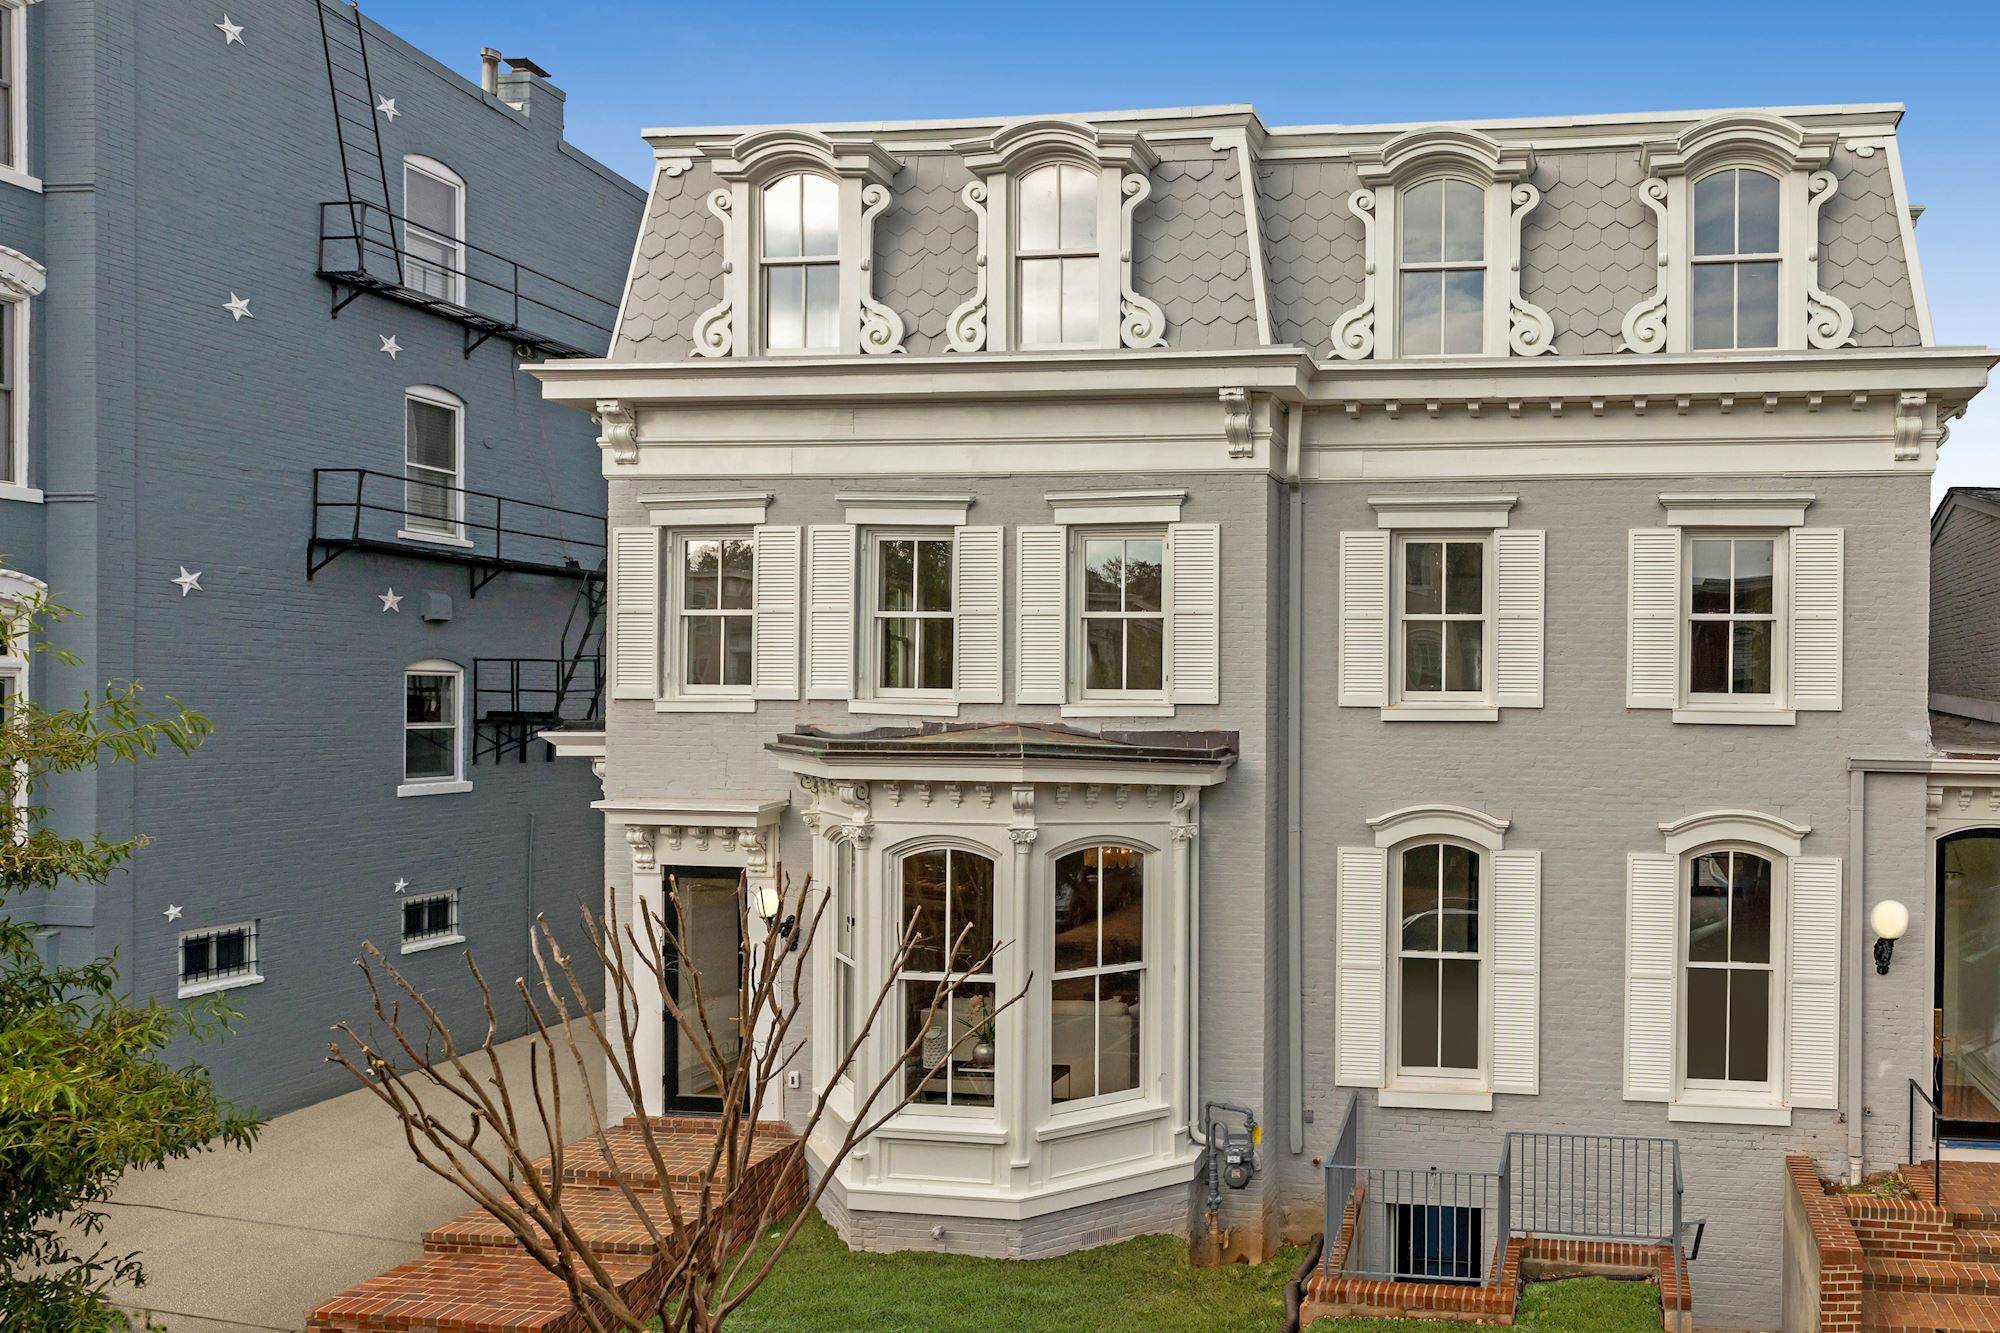 Frederick Douglass's First House In DC Has Been Renovated And Is On the Market for  Million